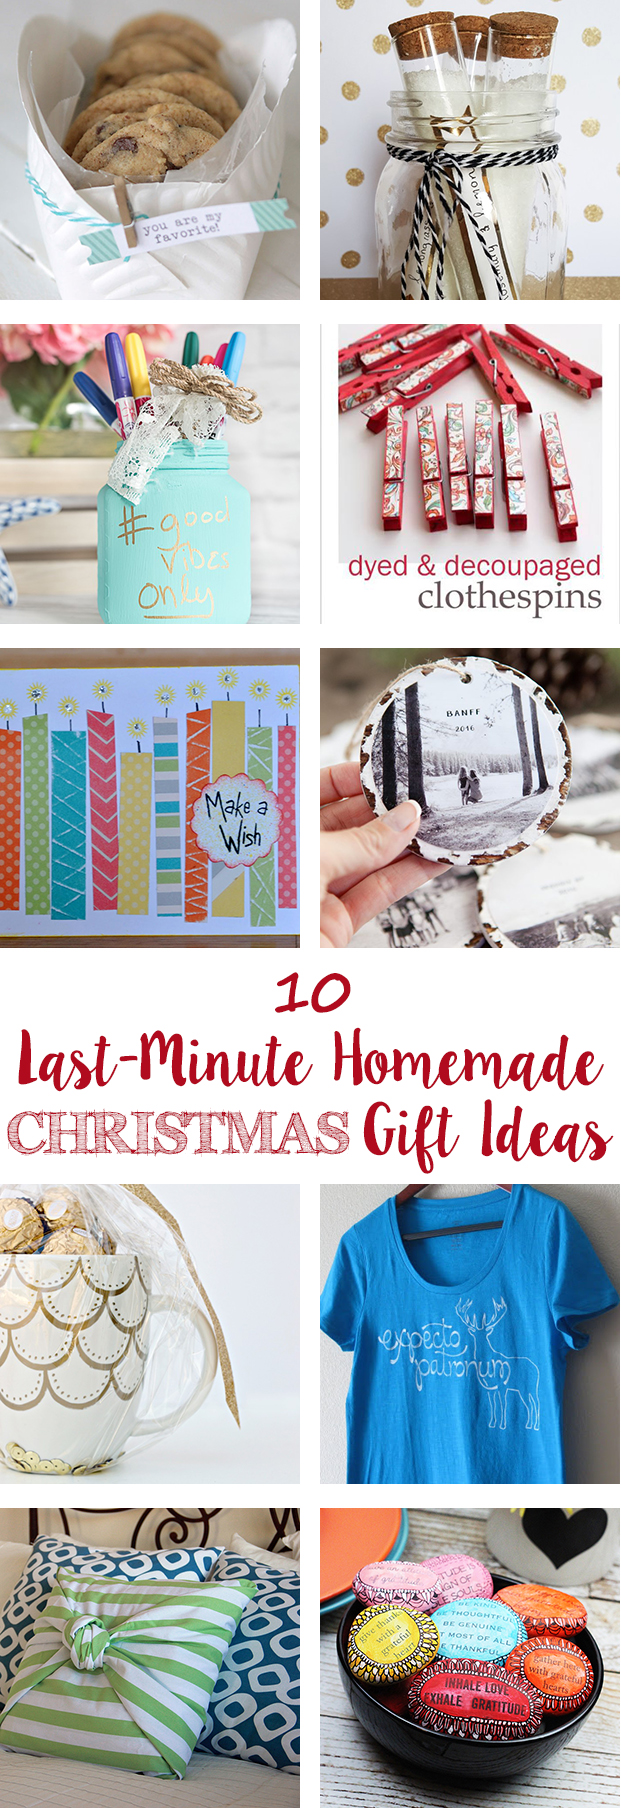 Last-Minute Homemade Christmas Gift Ideas • Rose Clearfield